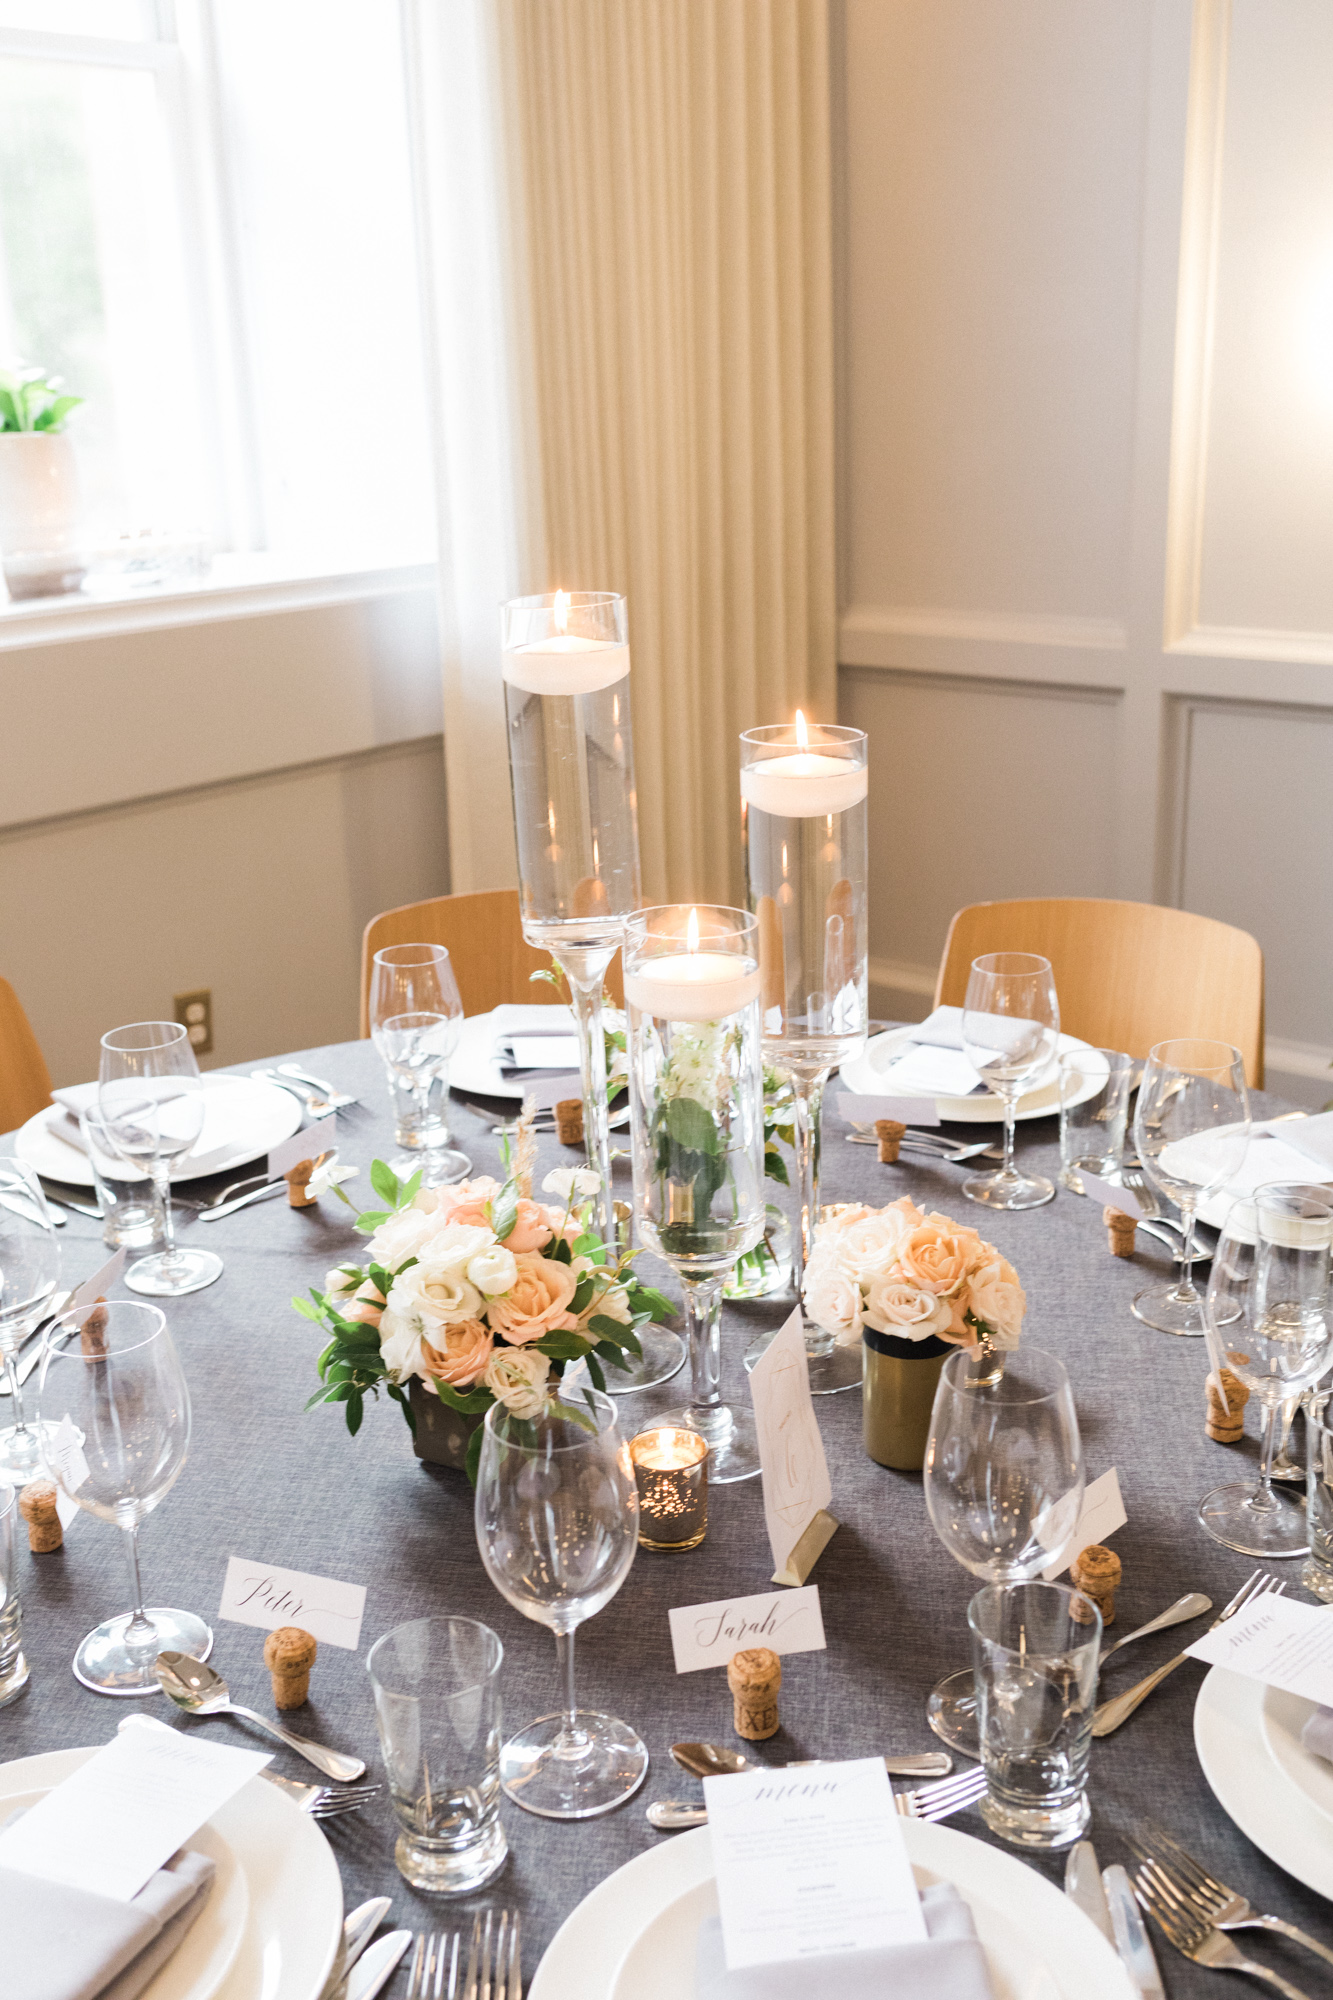 ReceptionDecorLineHotelWeddingDC2019PlumePhotography